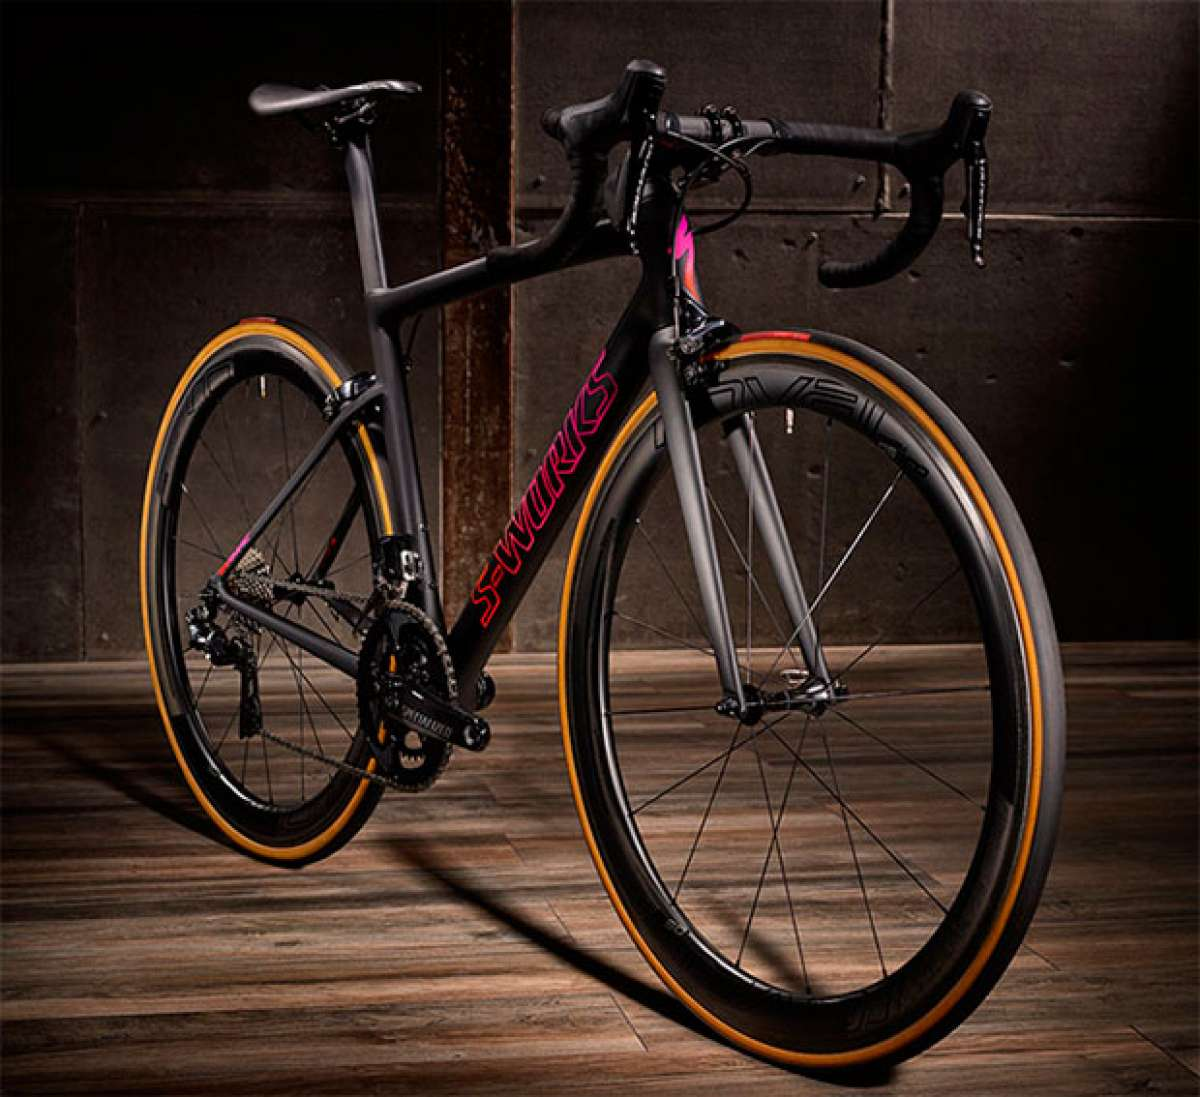 La Specialized Tarmac de 2018 en acción